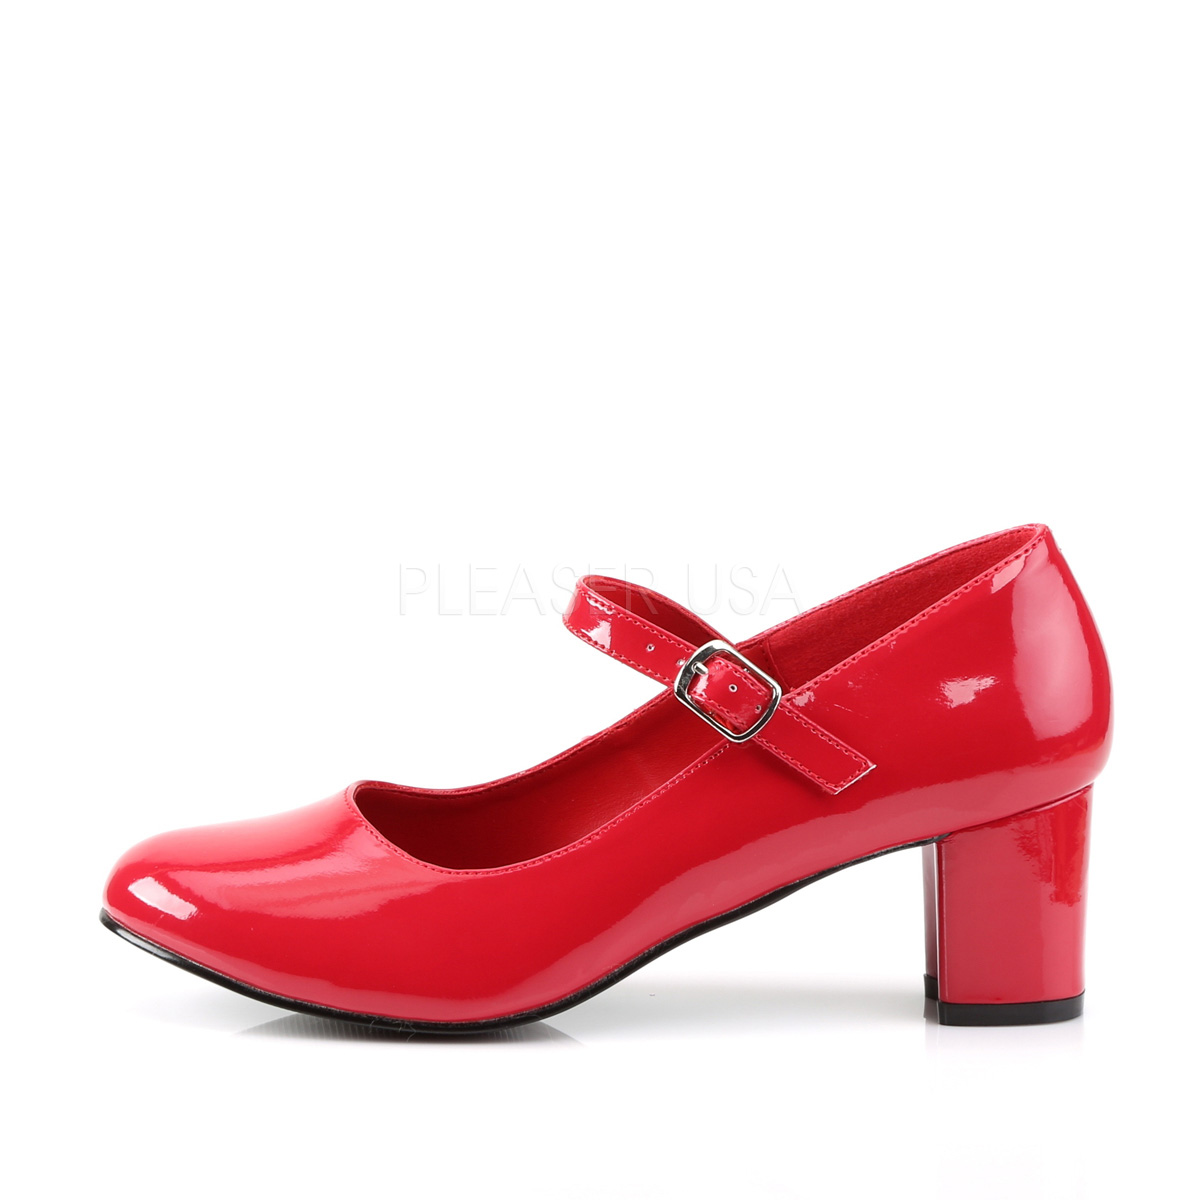 Funtasma SCHOOLGIRL-50 2inch Heel Plain Mary Jane Schoolgirl Retro Shoe◆取り寄せ